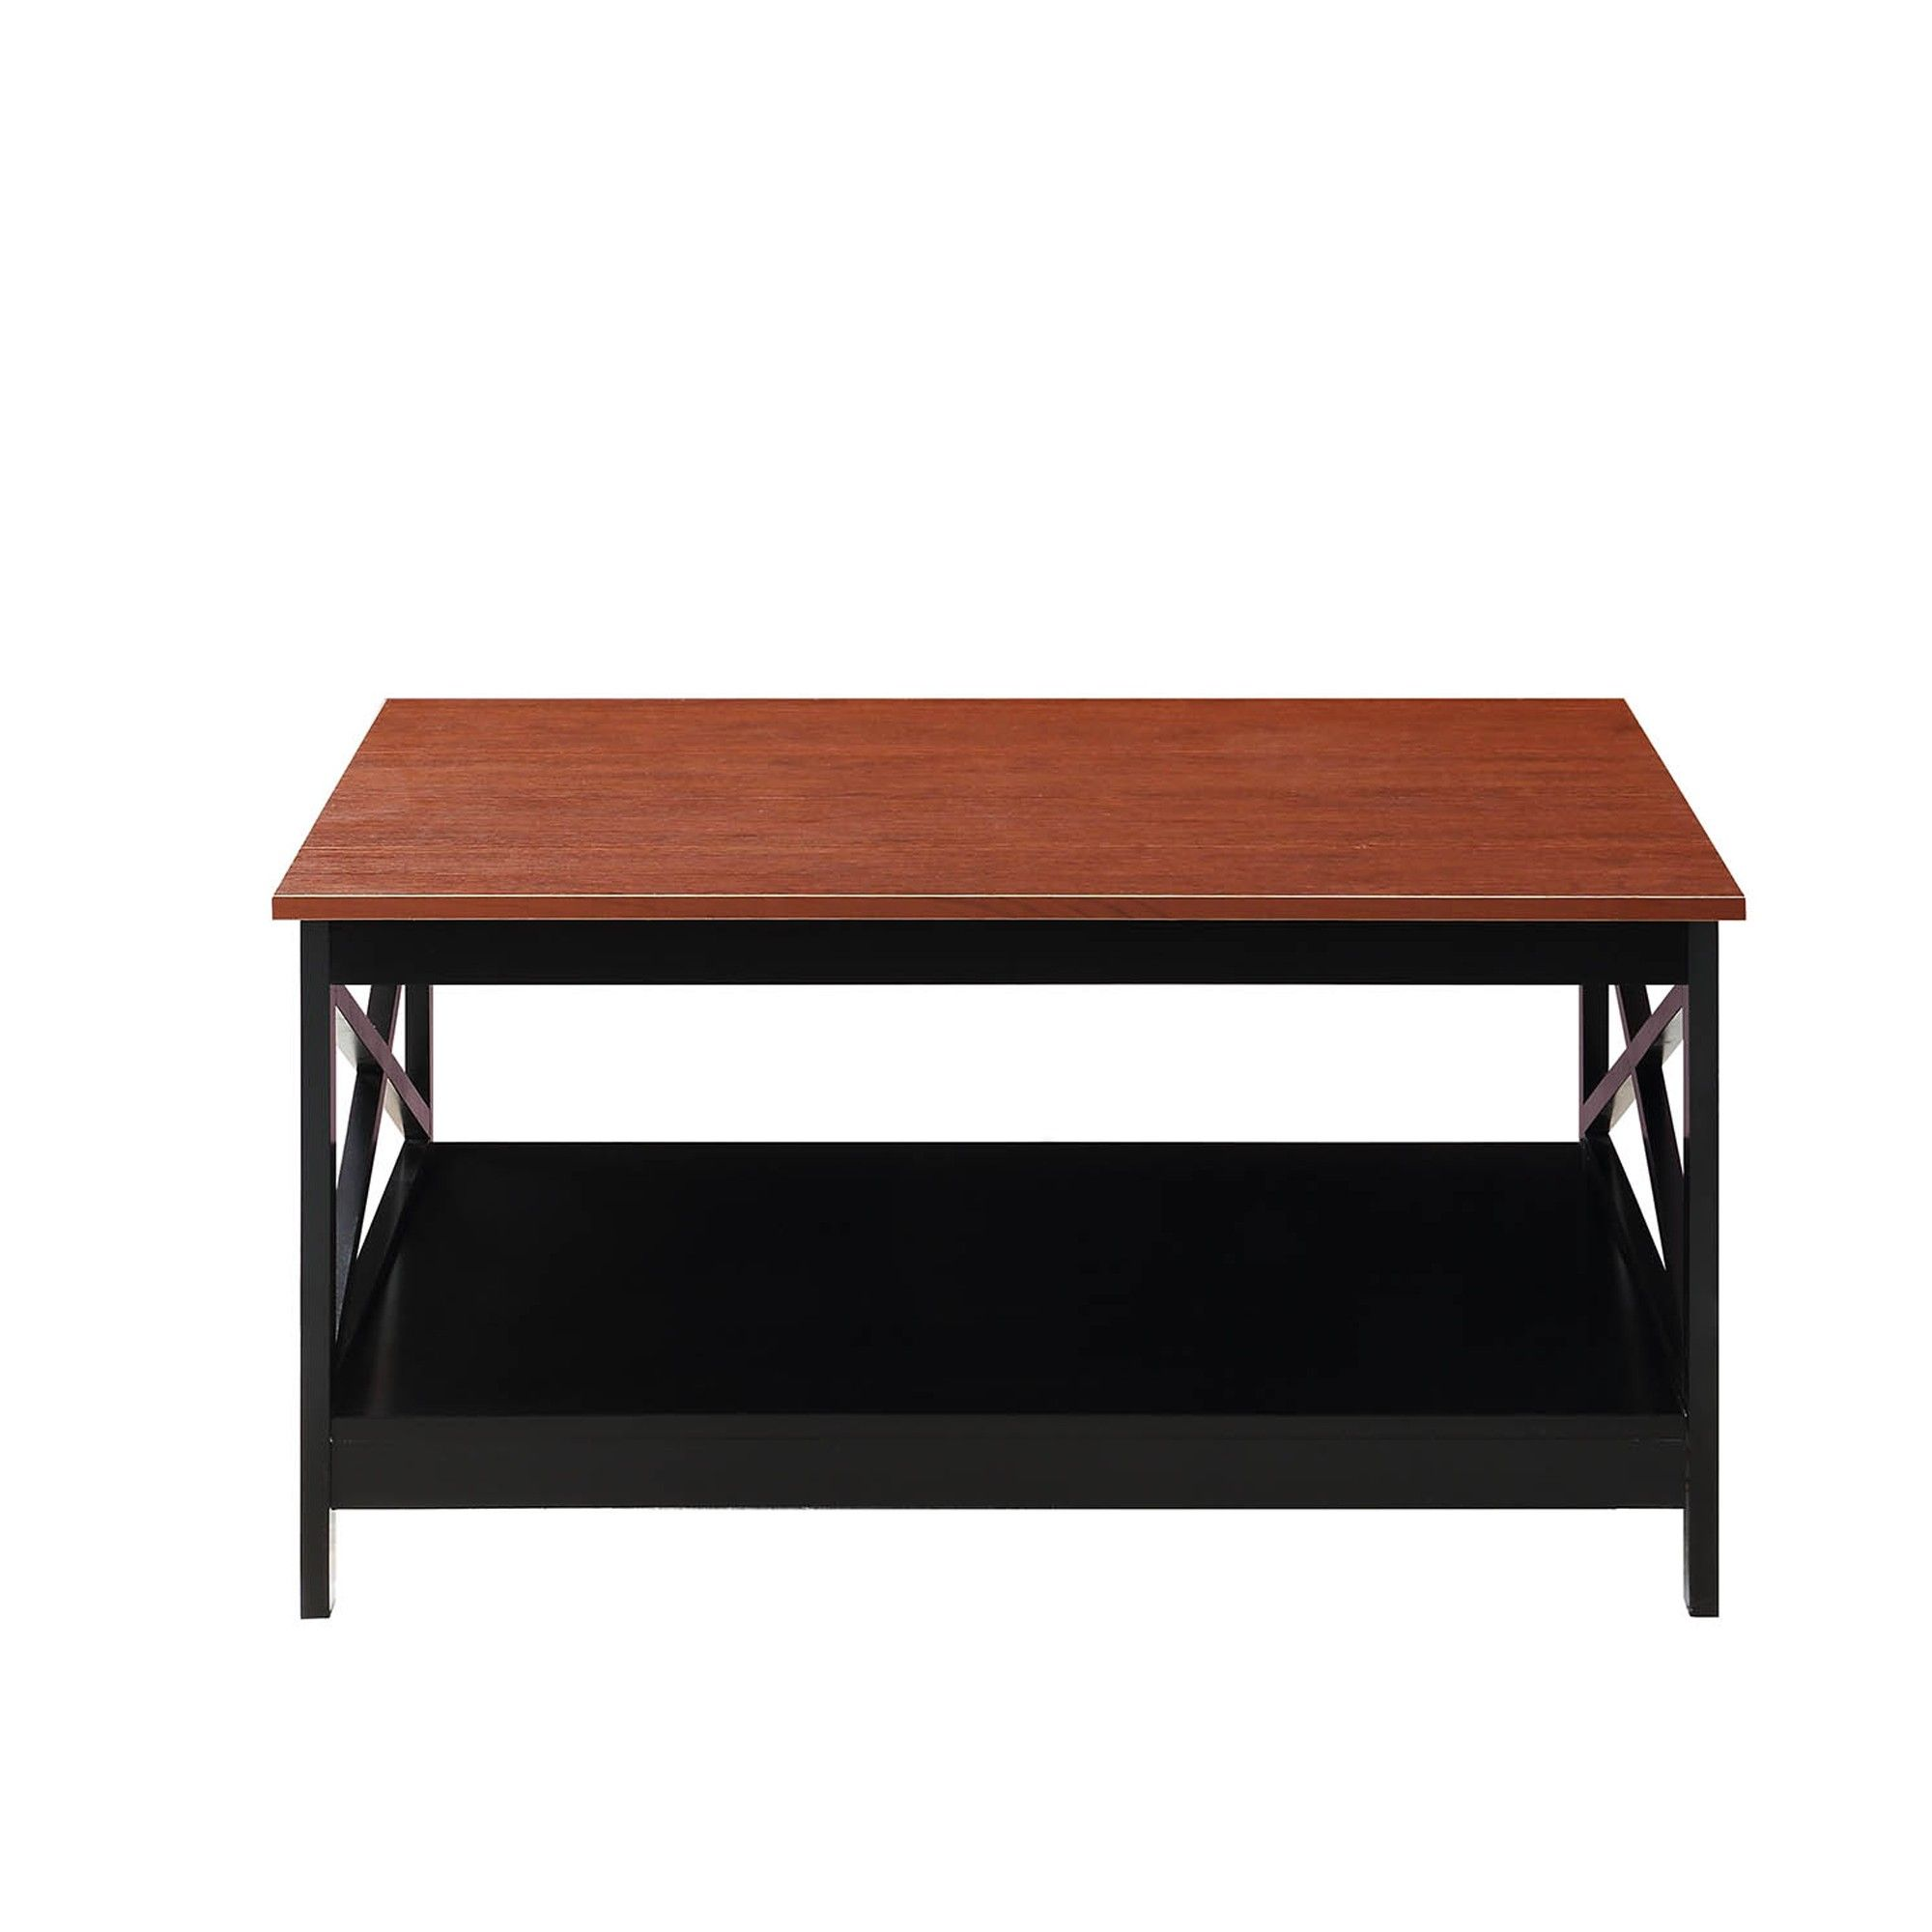 Oxford 36 Square Coffee Table Cherry Brown Black Johar Furniture Furniture Table Cherry Brown